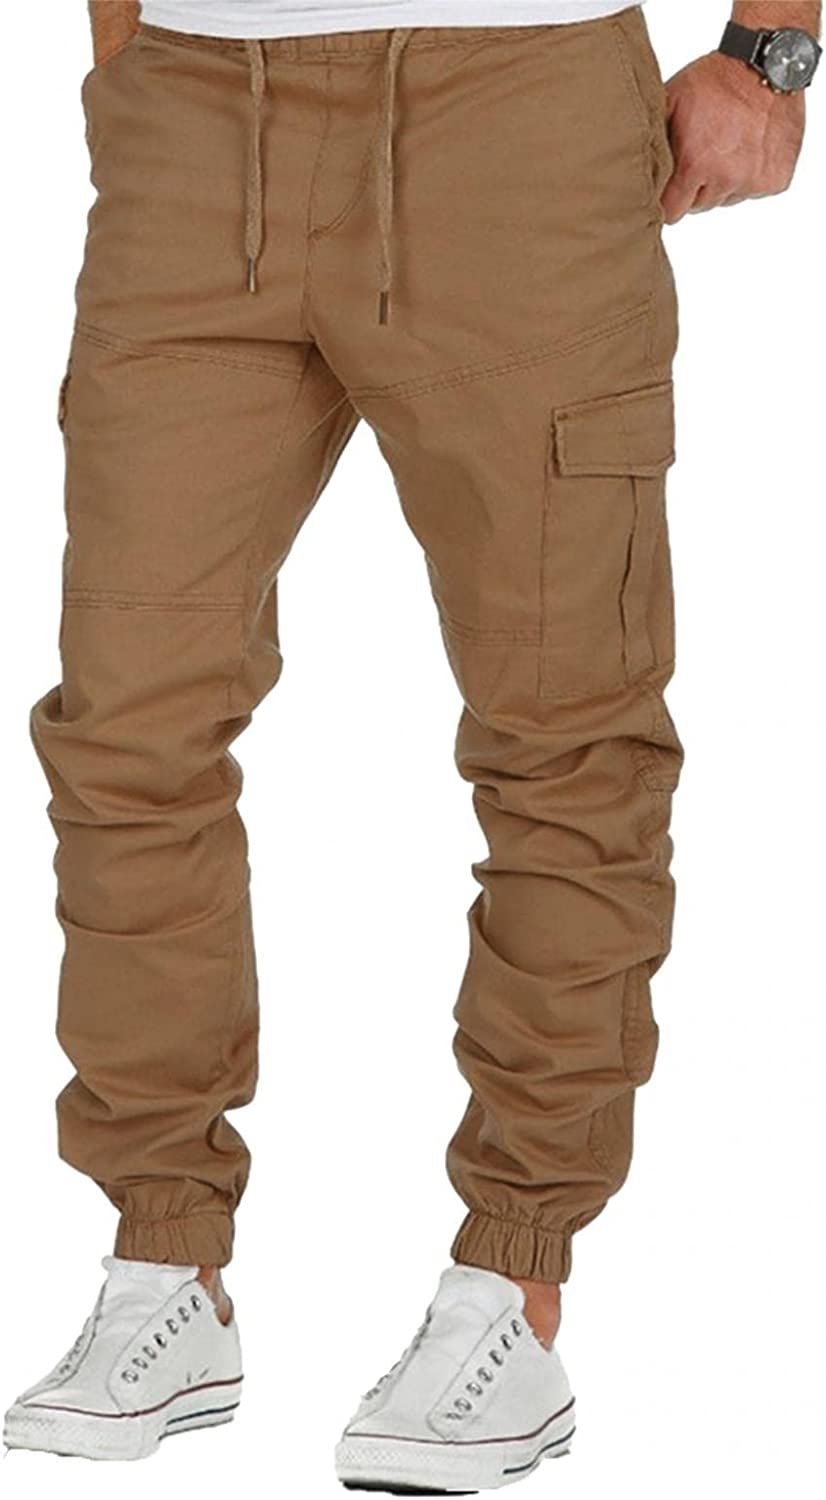 FUNEY Men's Chino Jogger Pants Casual Slim Athletic Workout Drawstring Multi-Pockets Tactical Outdoor Military Cargo Pants